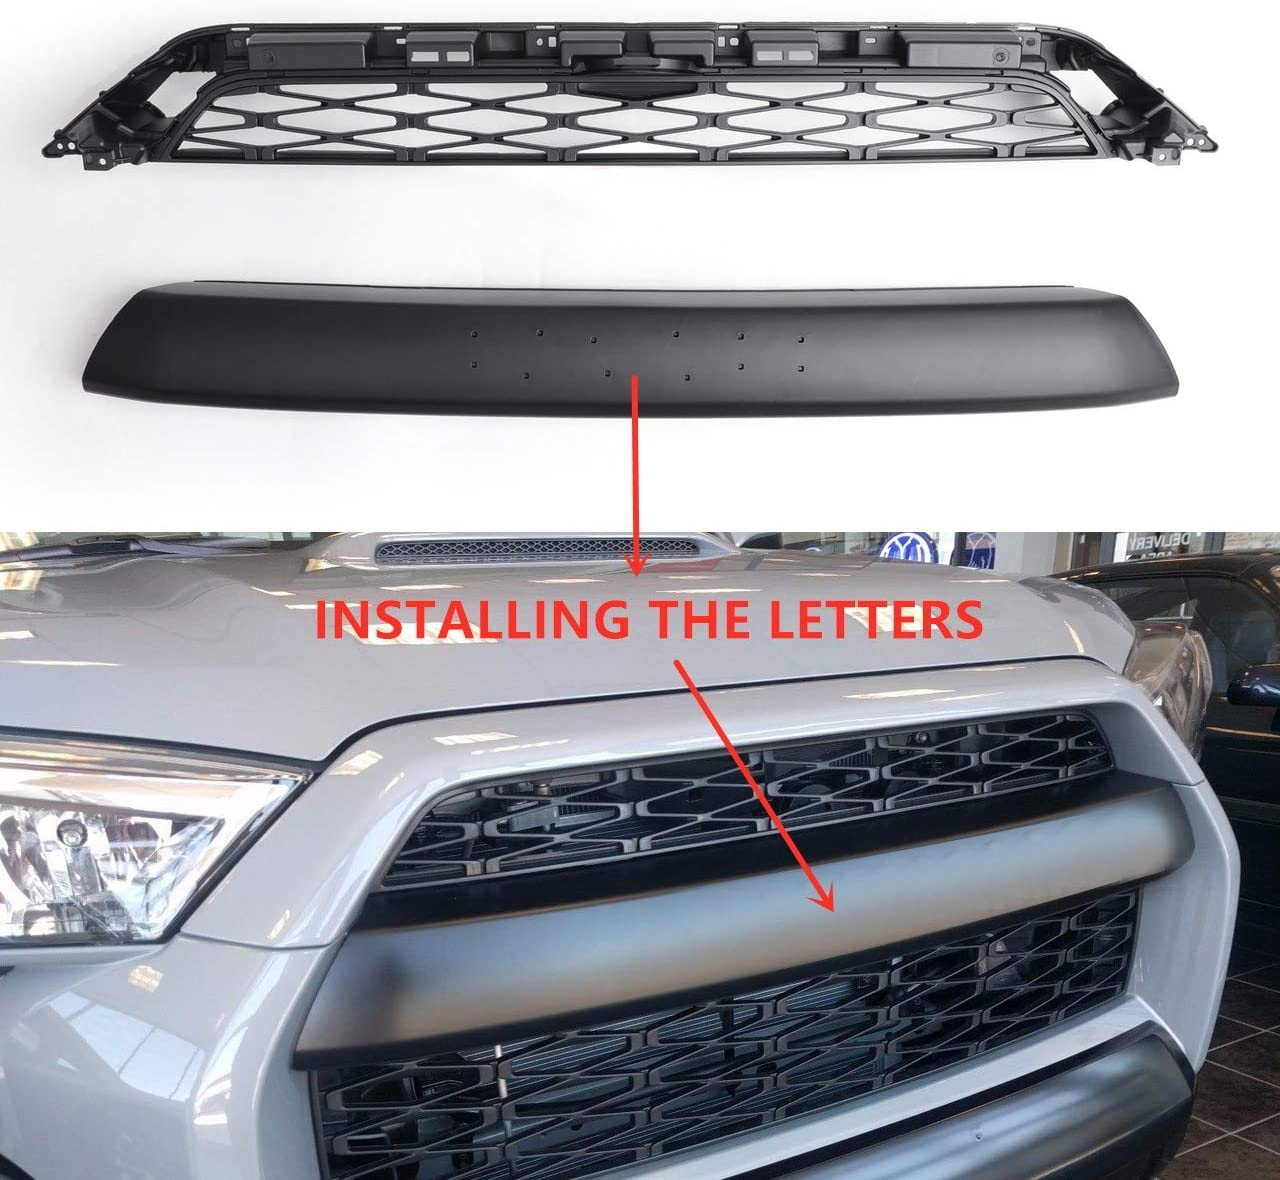 Matt Black Upper Bumper Sport Grille Replacement 2 Piece Kit Gen Front Grill Compatible with 4Runner TRD PRO Style Grille W//Six Letters